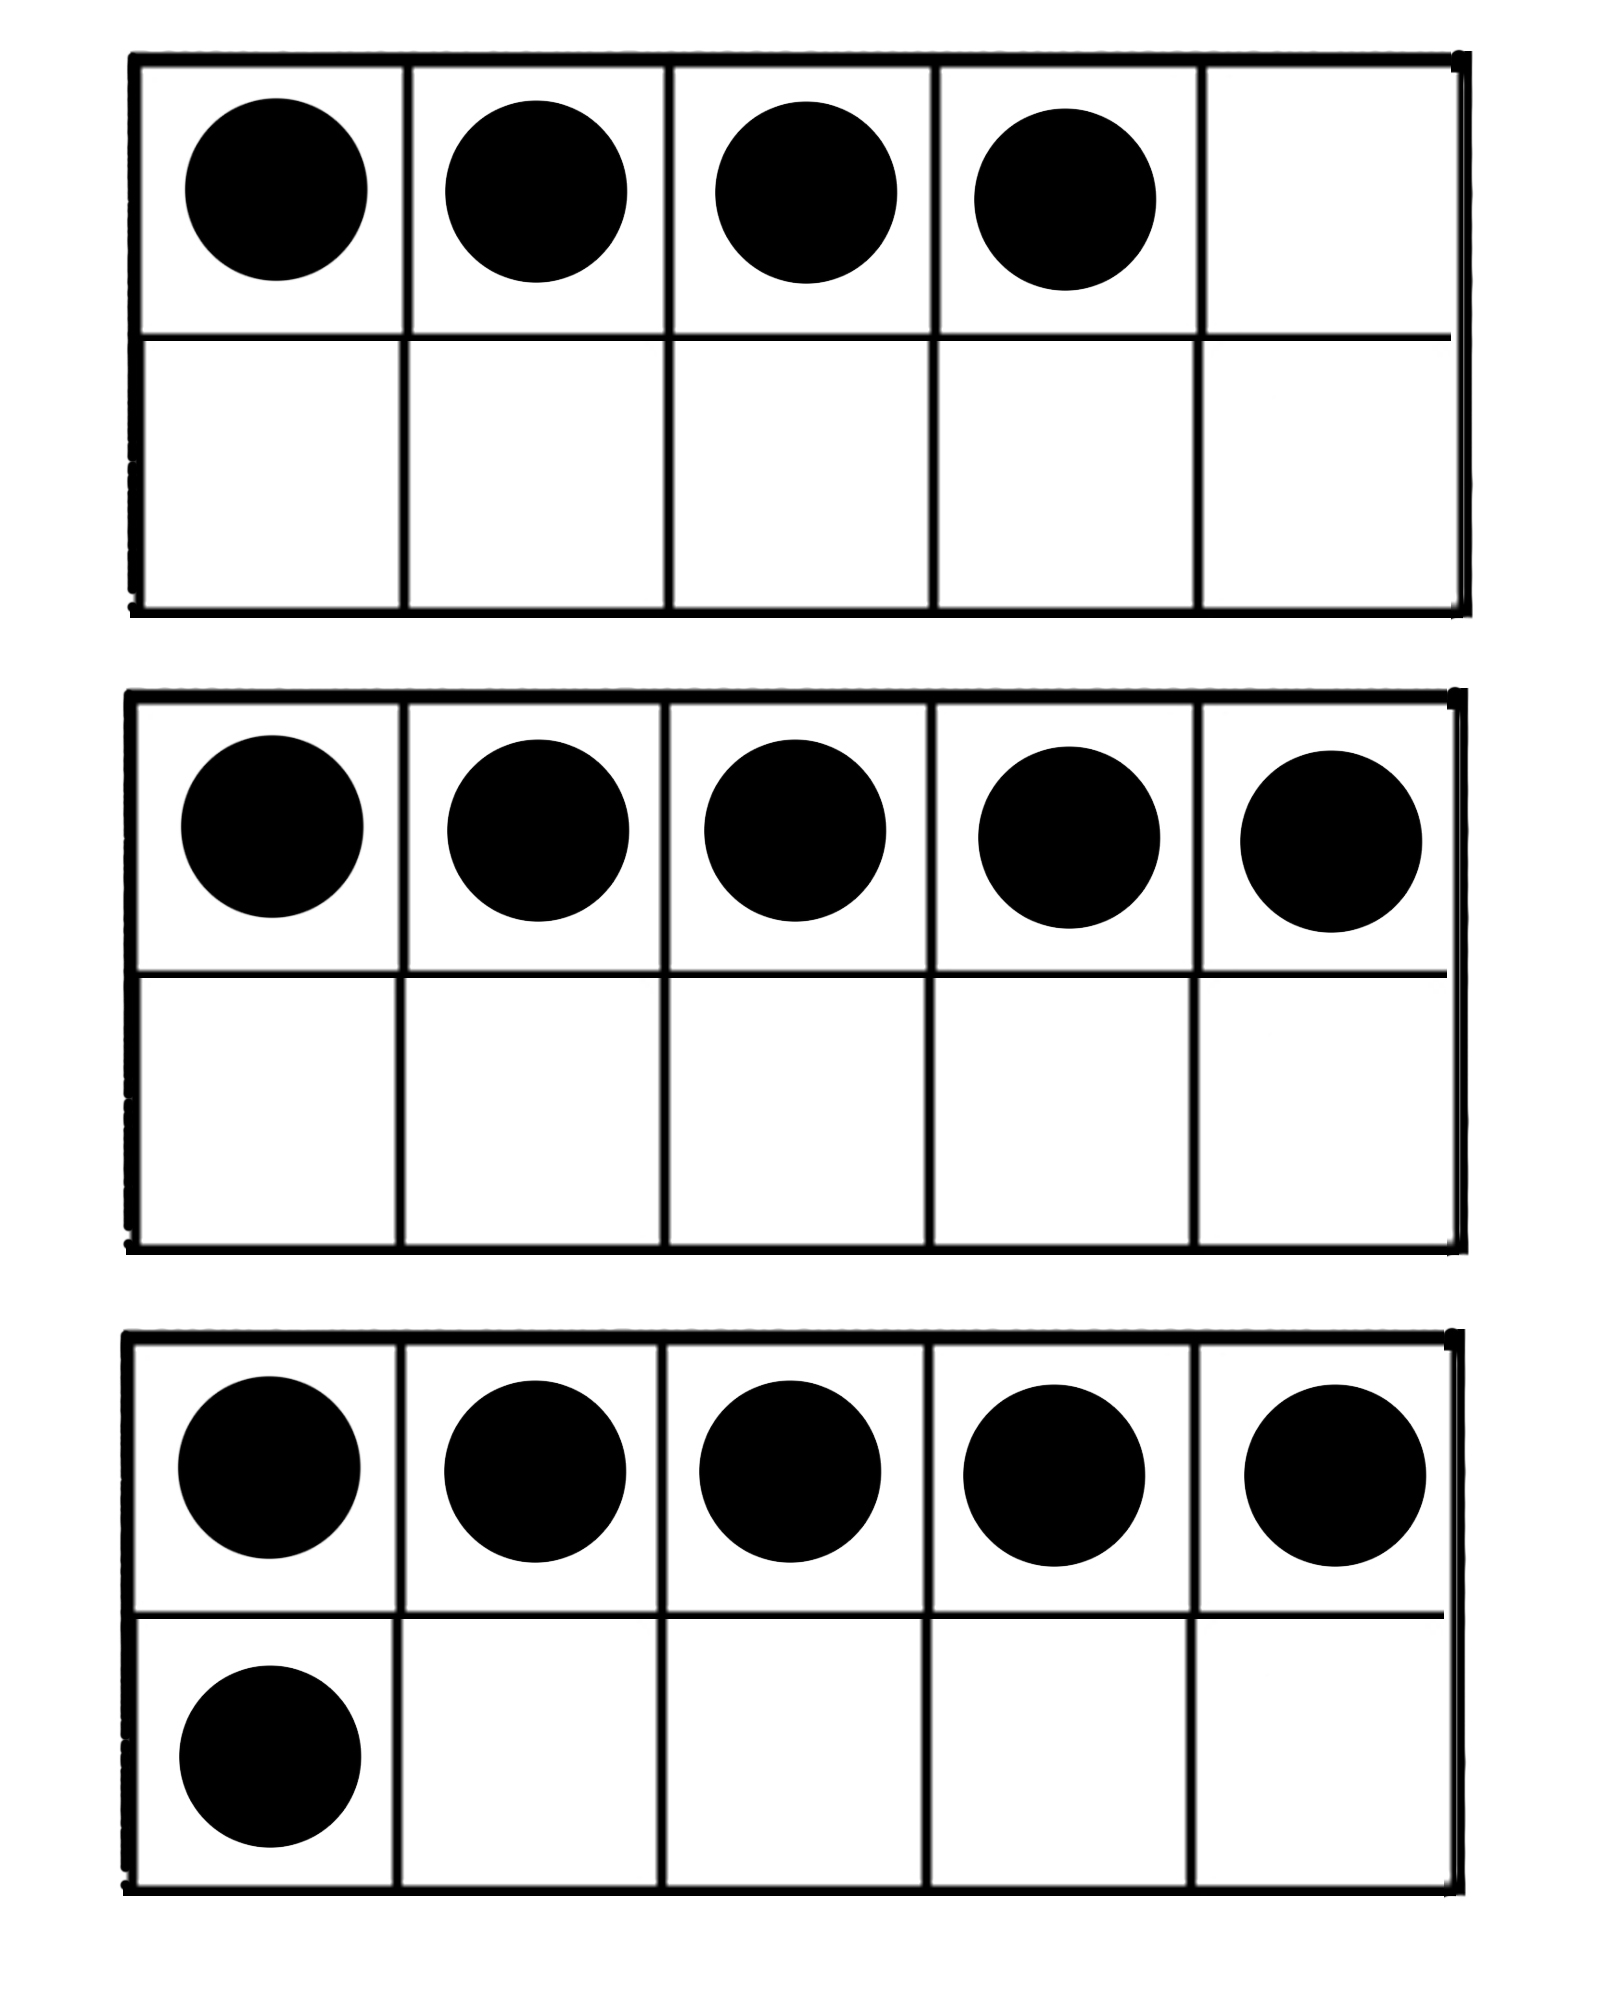 Ten Frame Math Games http://theclarkchronicles.com/?p=1877